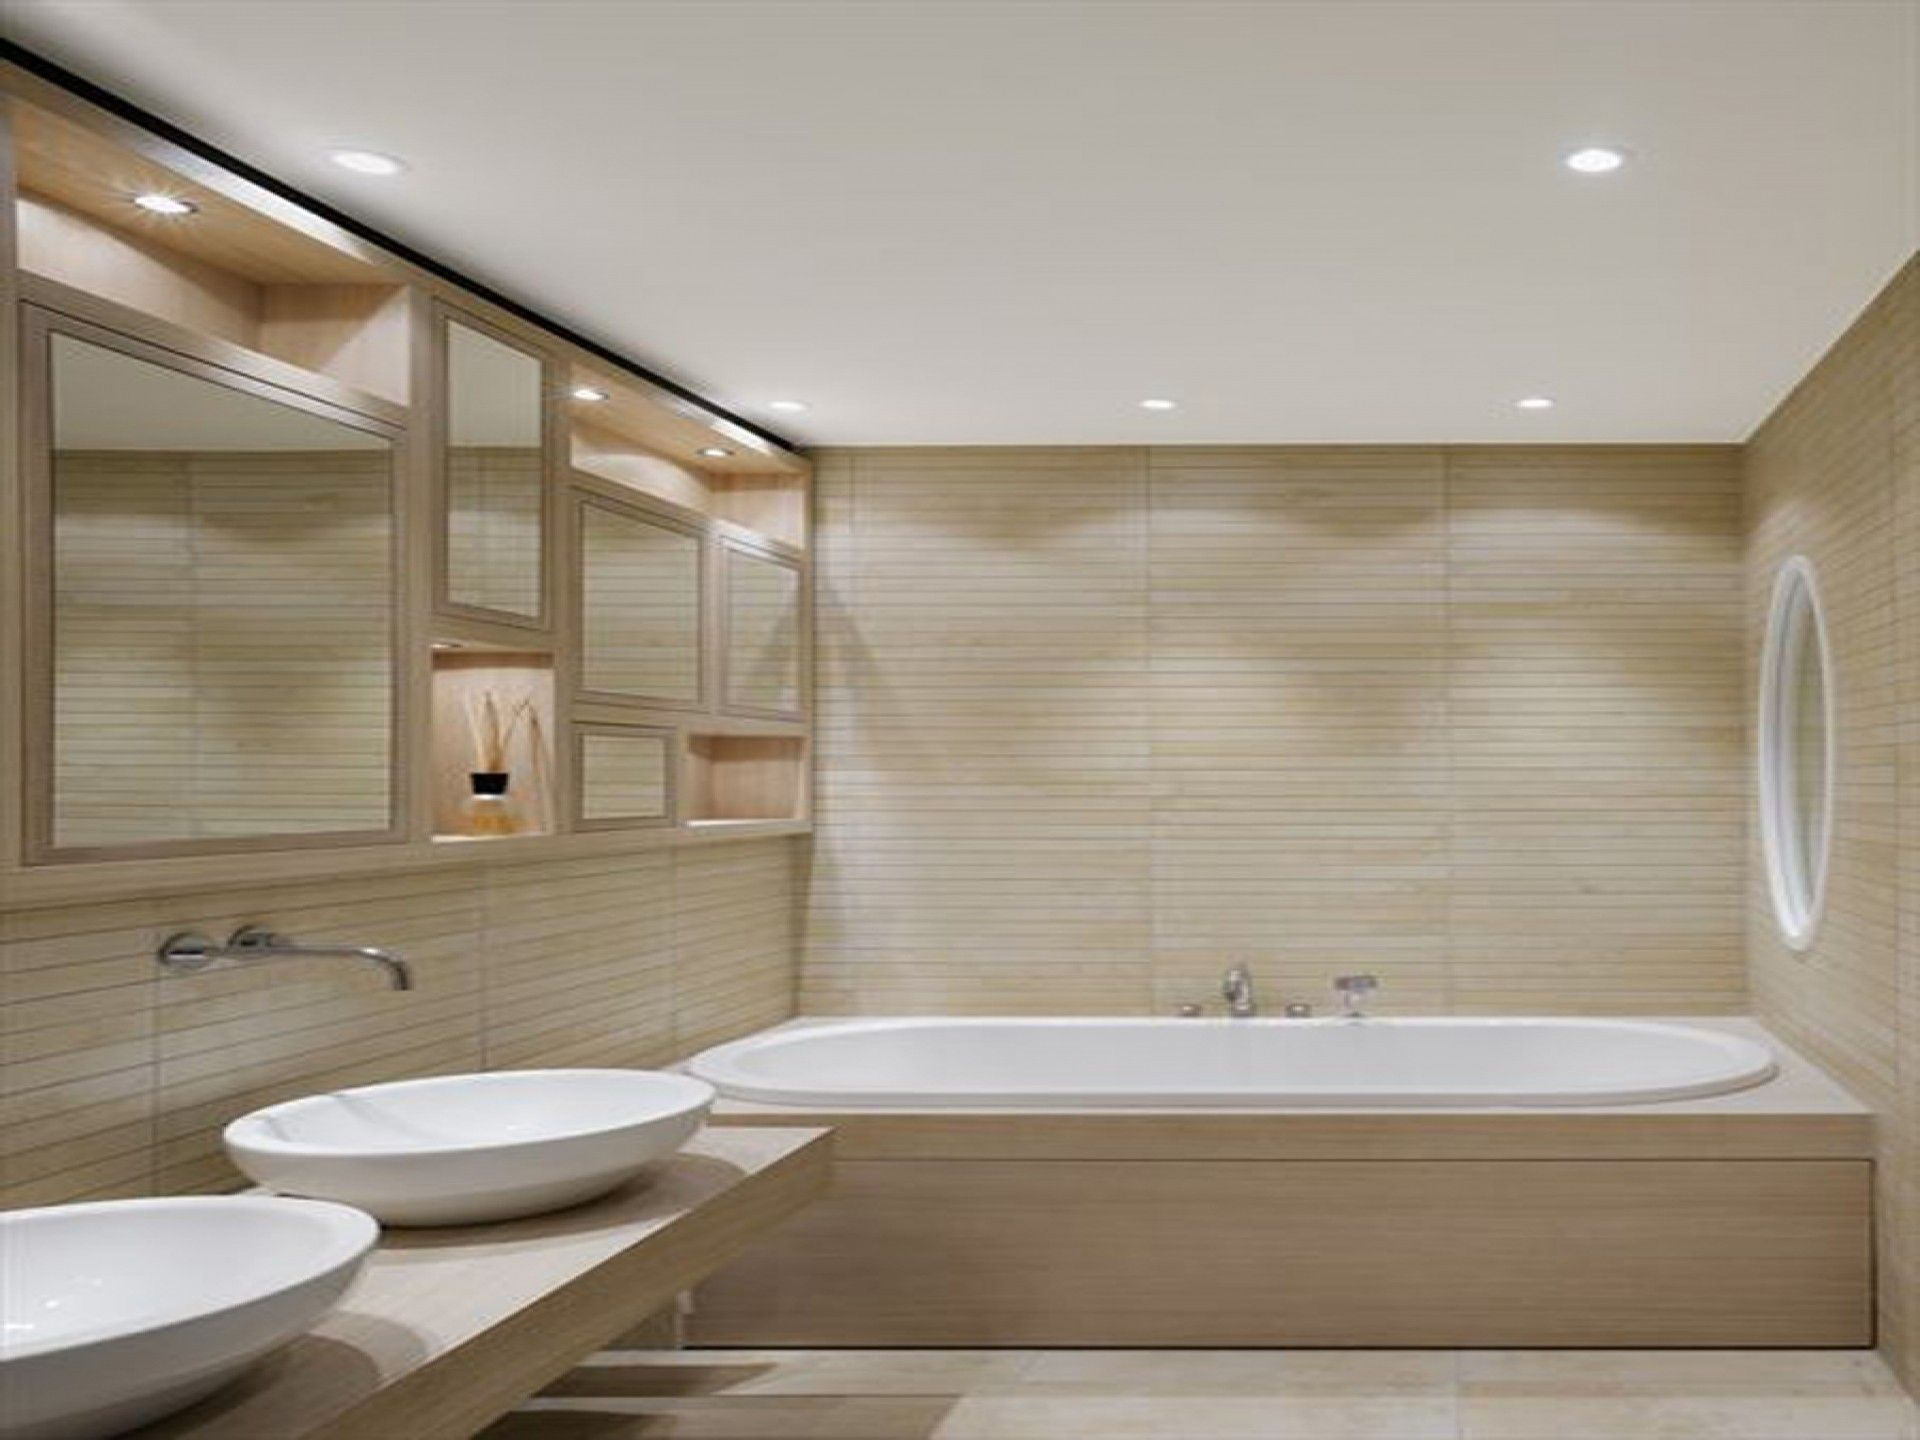 Beau Bathroom Designs Gallery Of Pictures